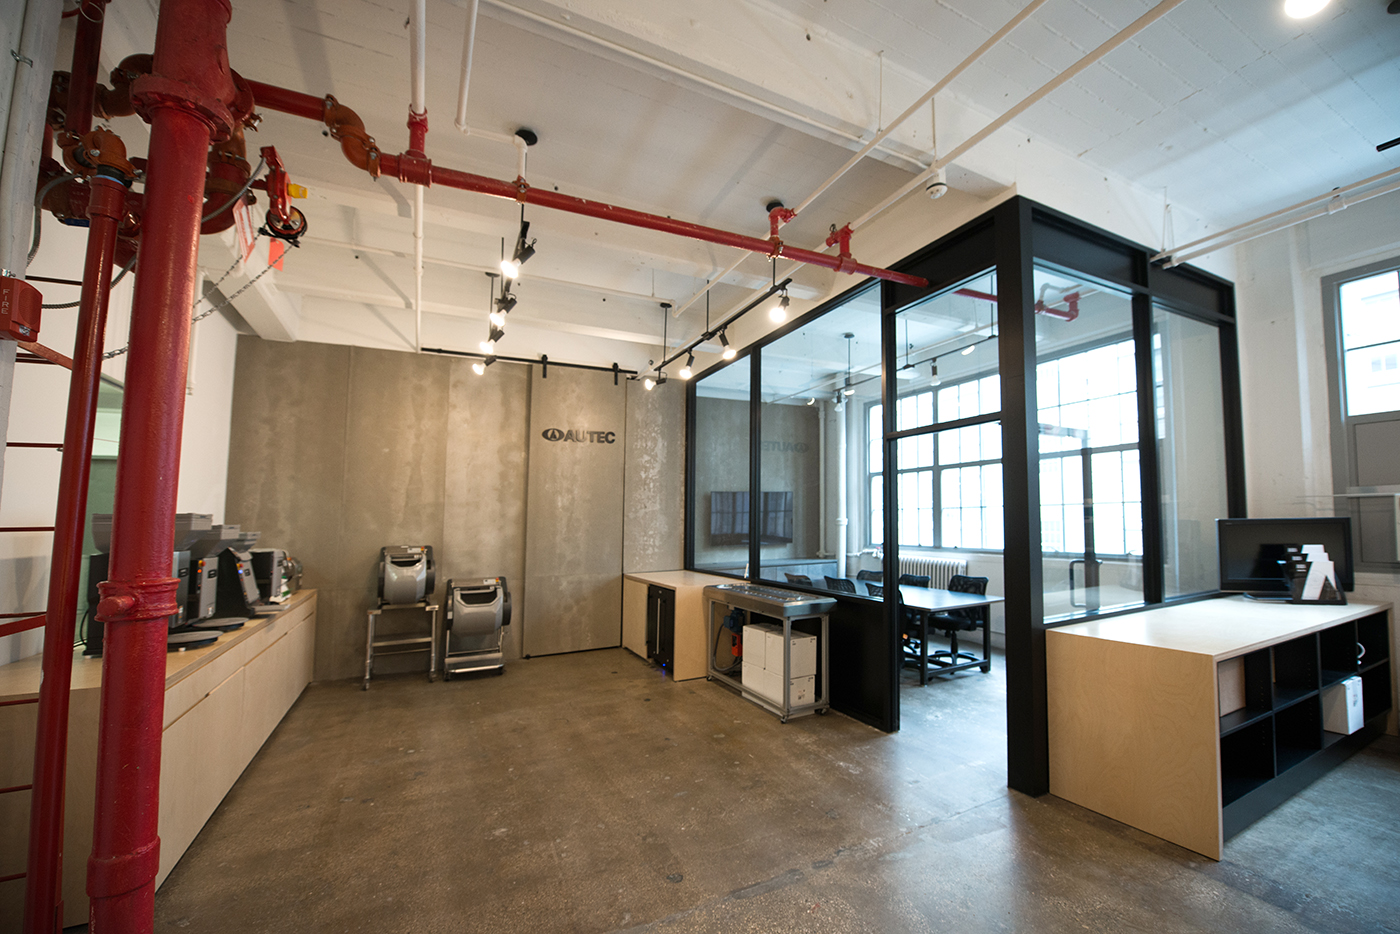 AUTEC Sushi Robot and Equipment Manufacturer New York Showroom at Industry City